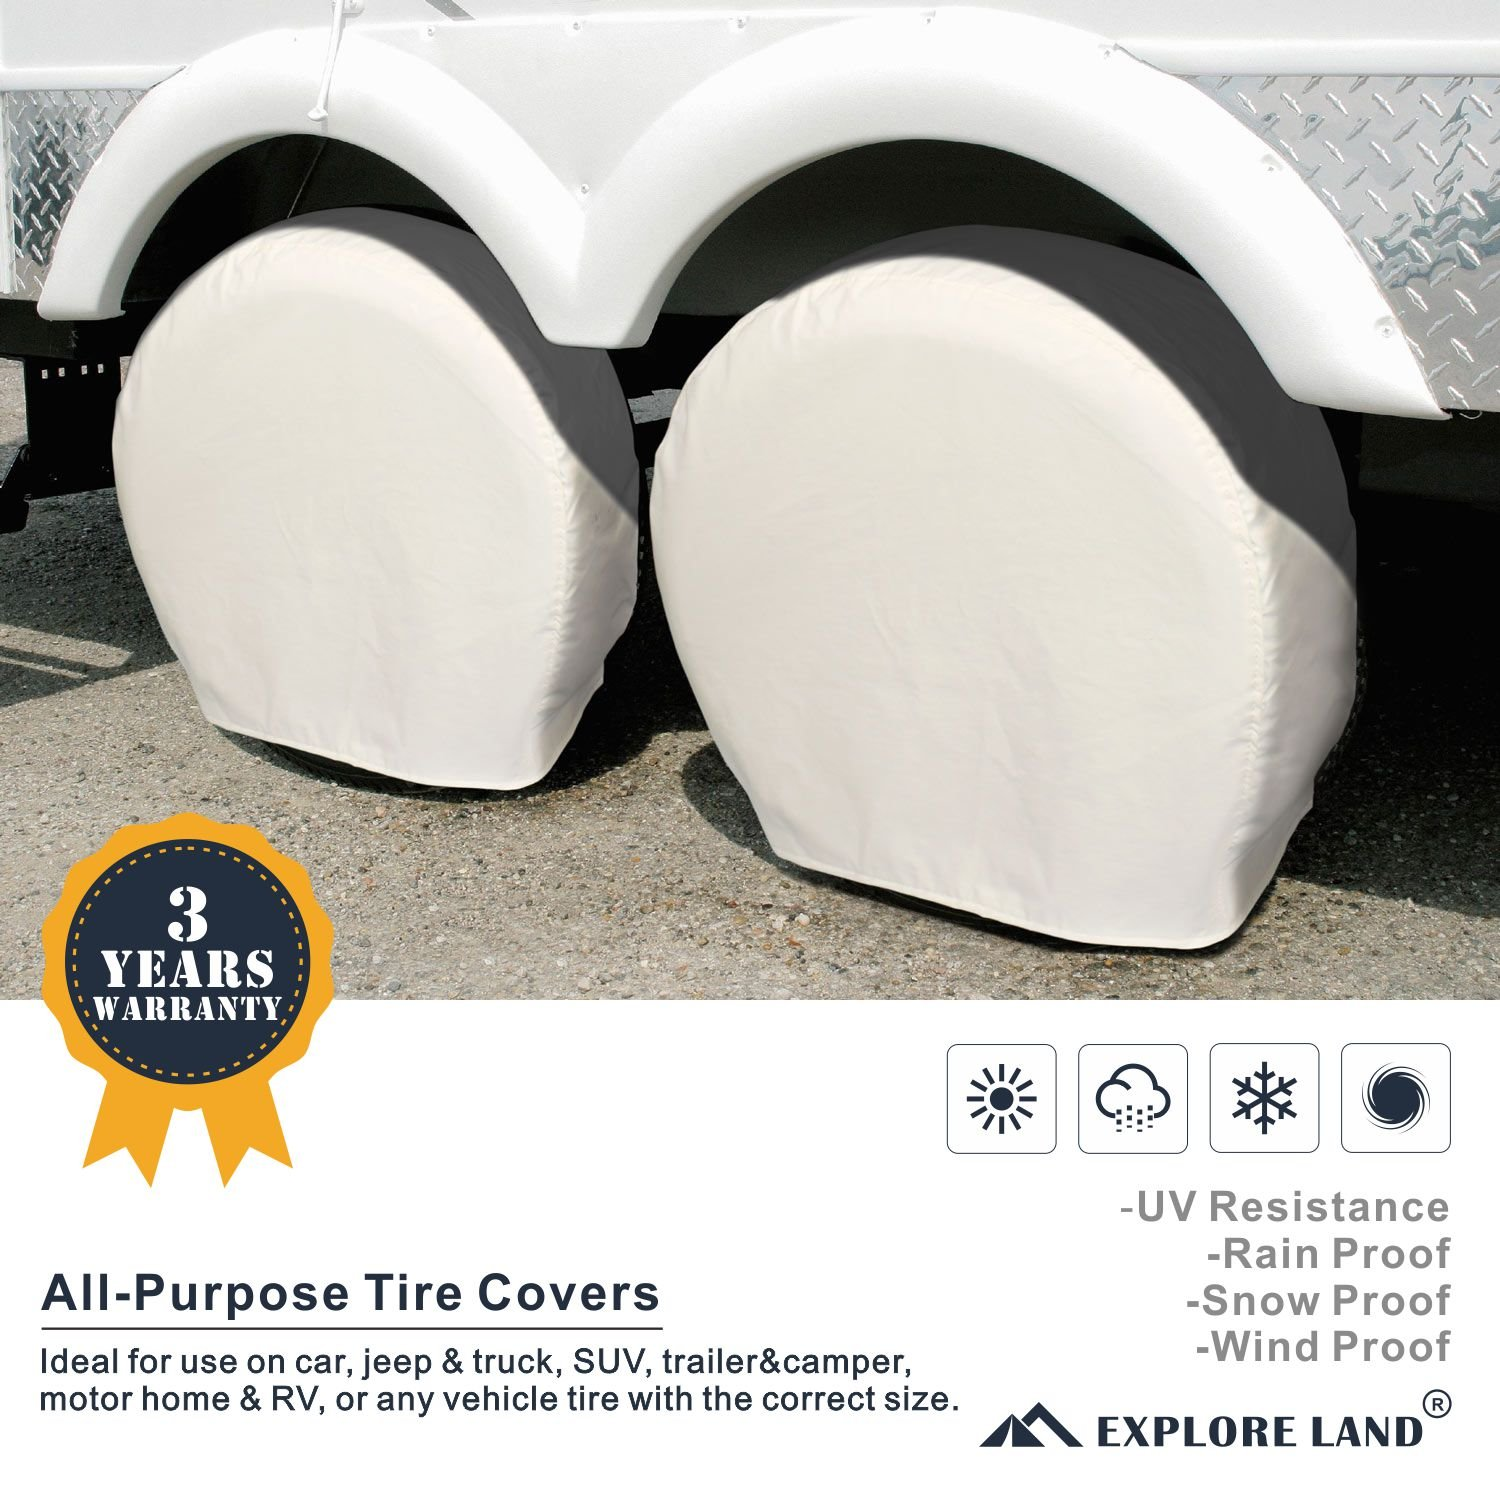 Explore Land Tire Cover 2 Pack For RV motorhome camper travel trailer truck Jeep SUV Tough Vinyl Wheel Protector Black Universal Fits Tire Diameters 32-34.75 inch